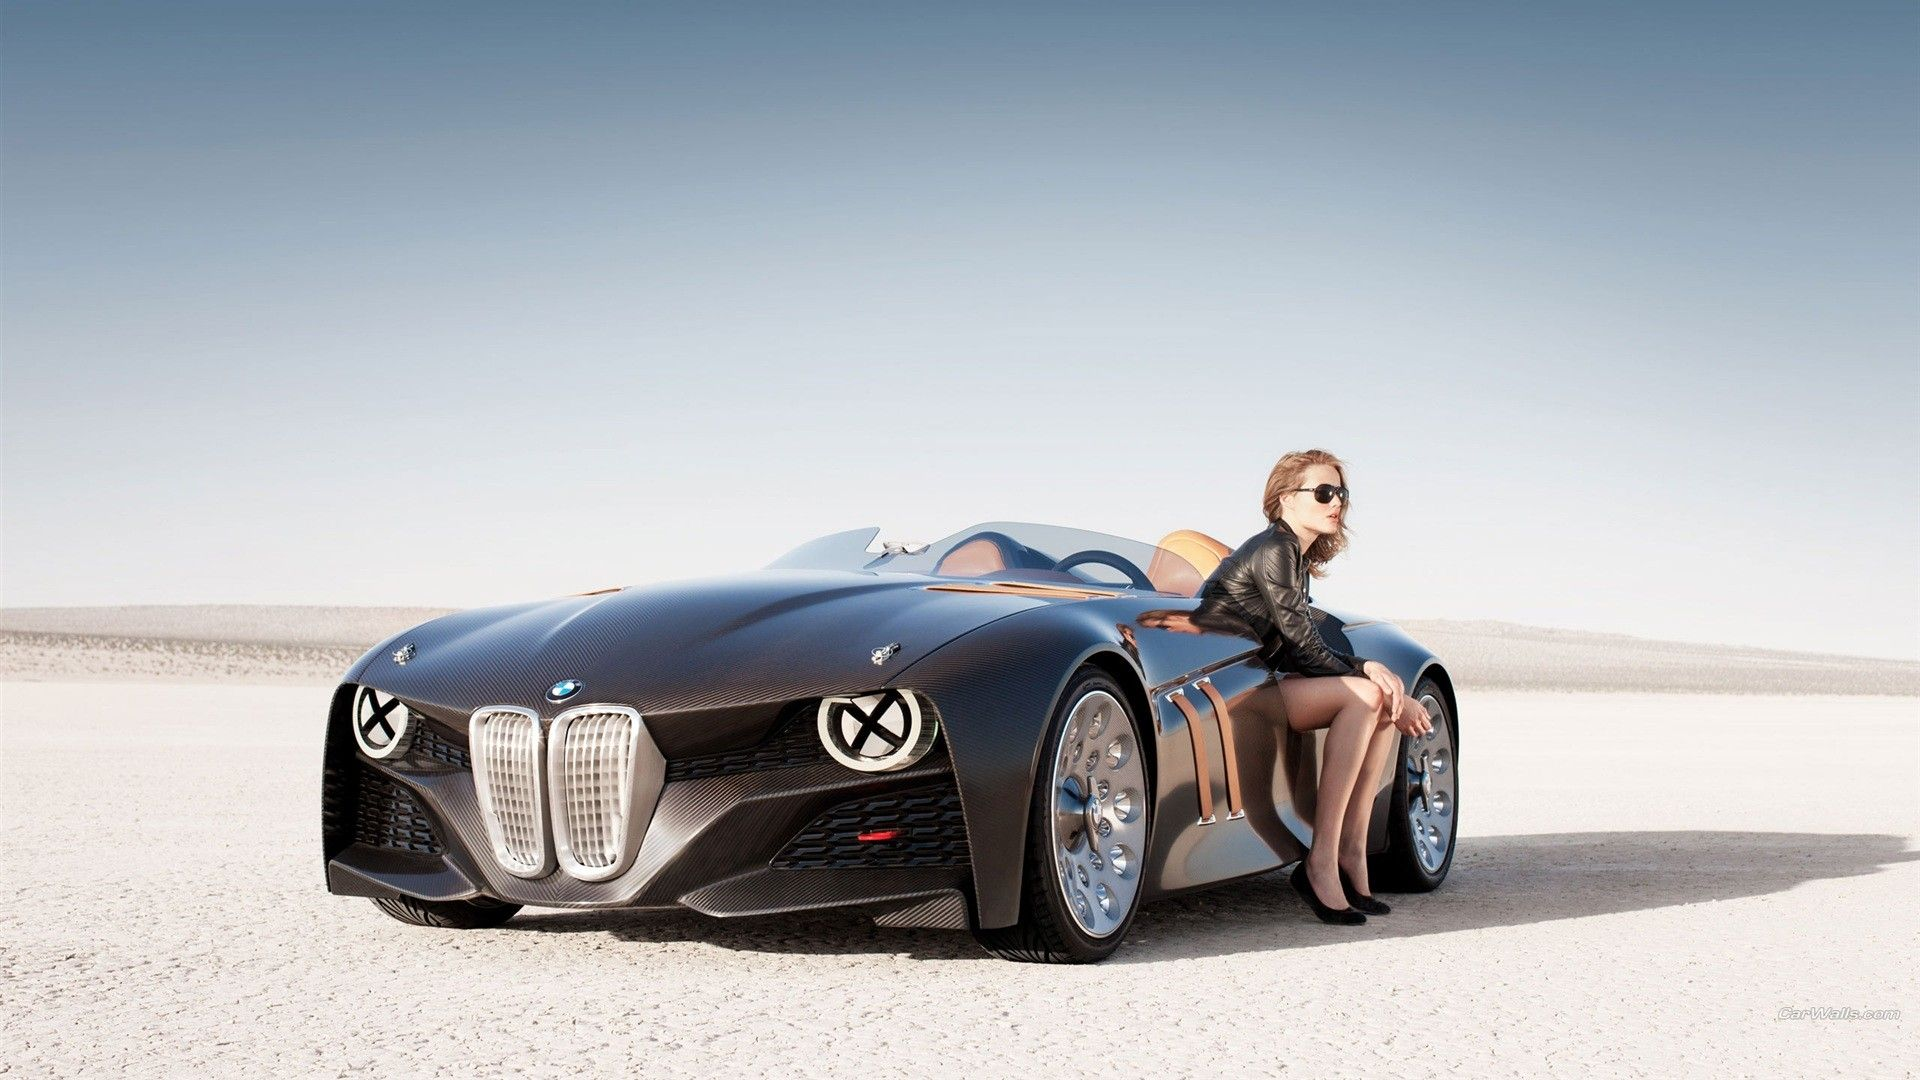 Concept car magazine cool car wallpapers - Cool Wallpapers Sports Cars Girl Is Waiting For Someone